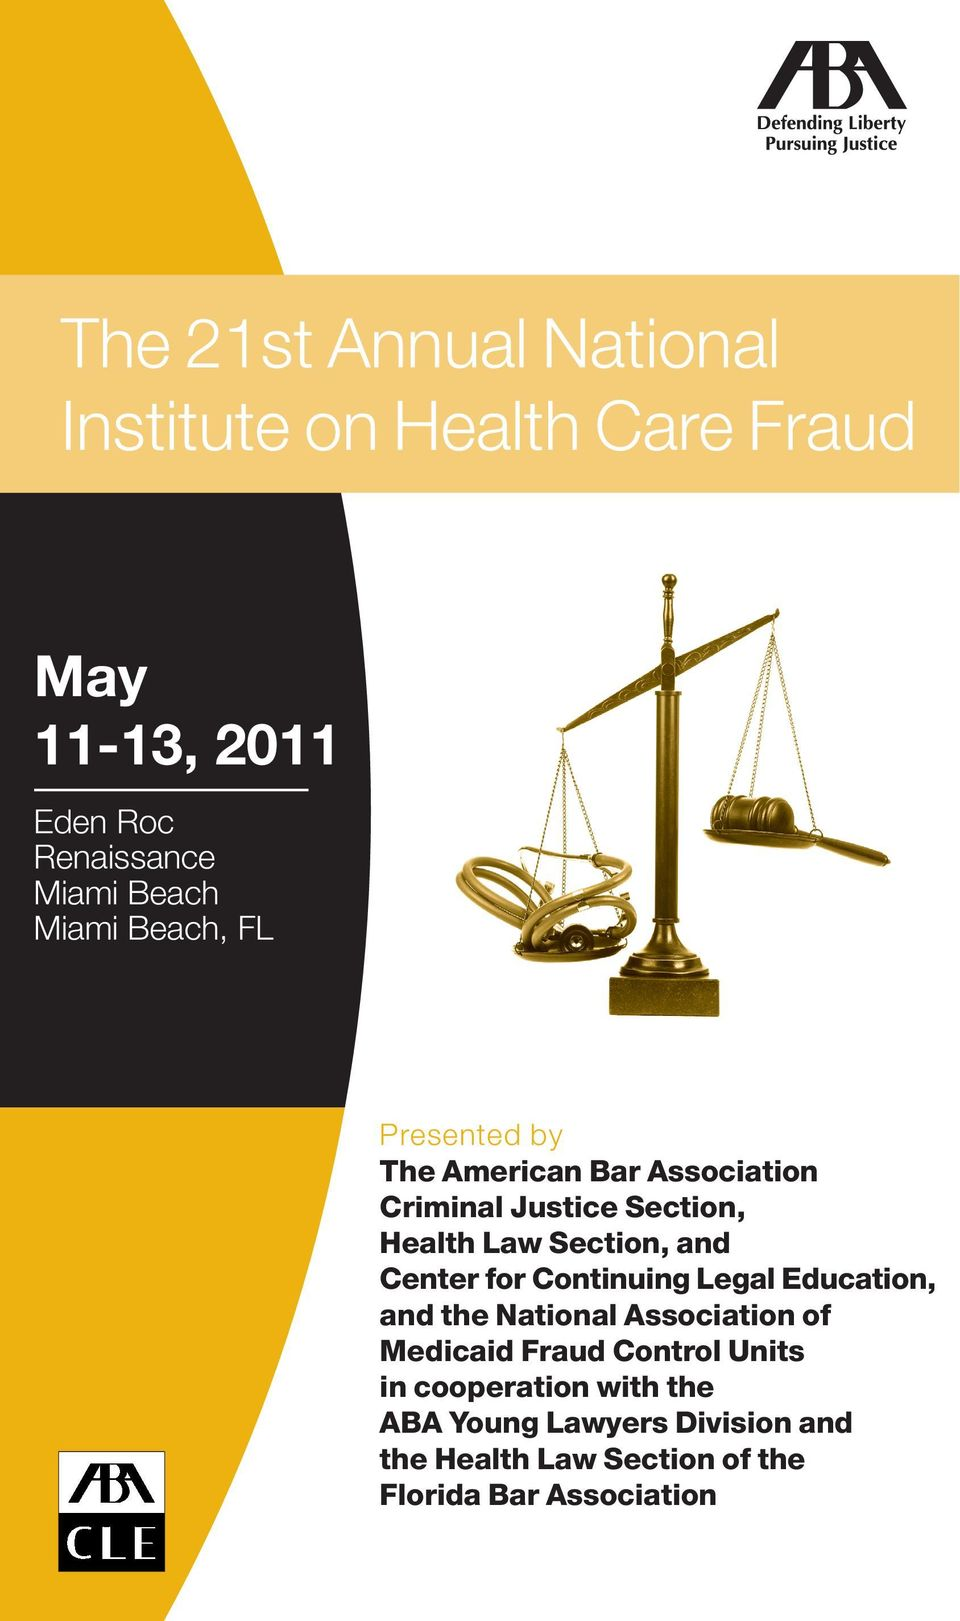 and Center for Continuing Legal Education, and the National Association of Medicaid Fraud Control Units